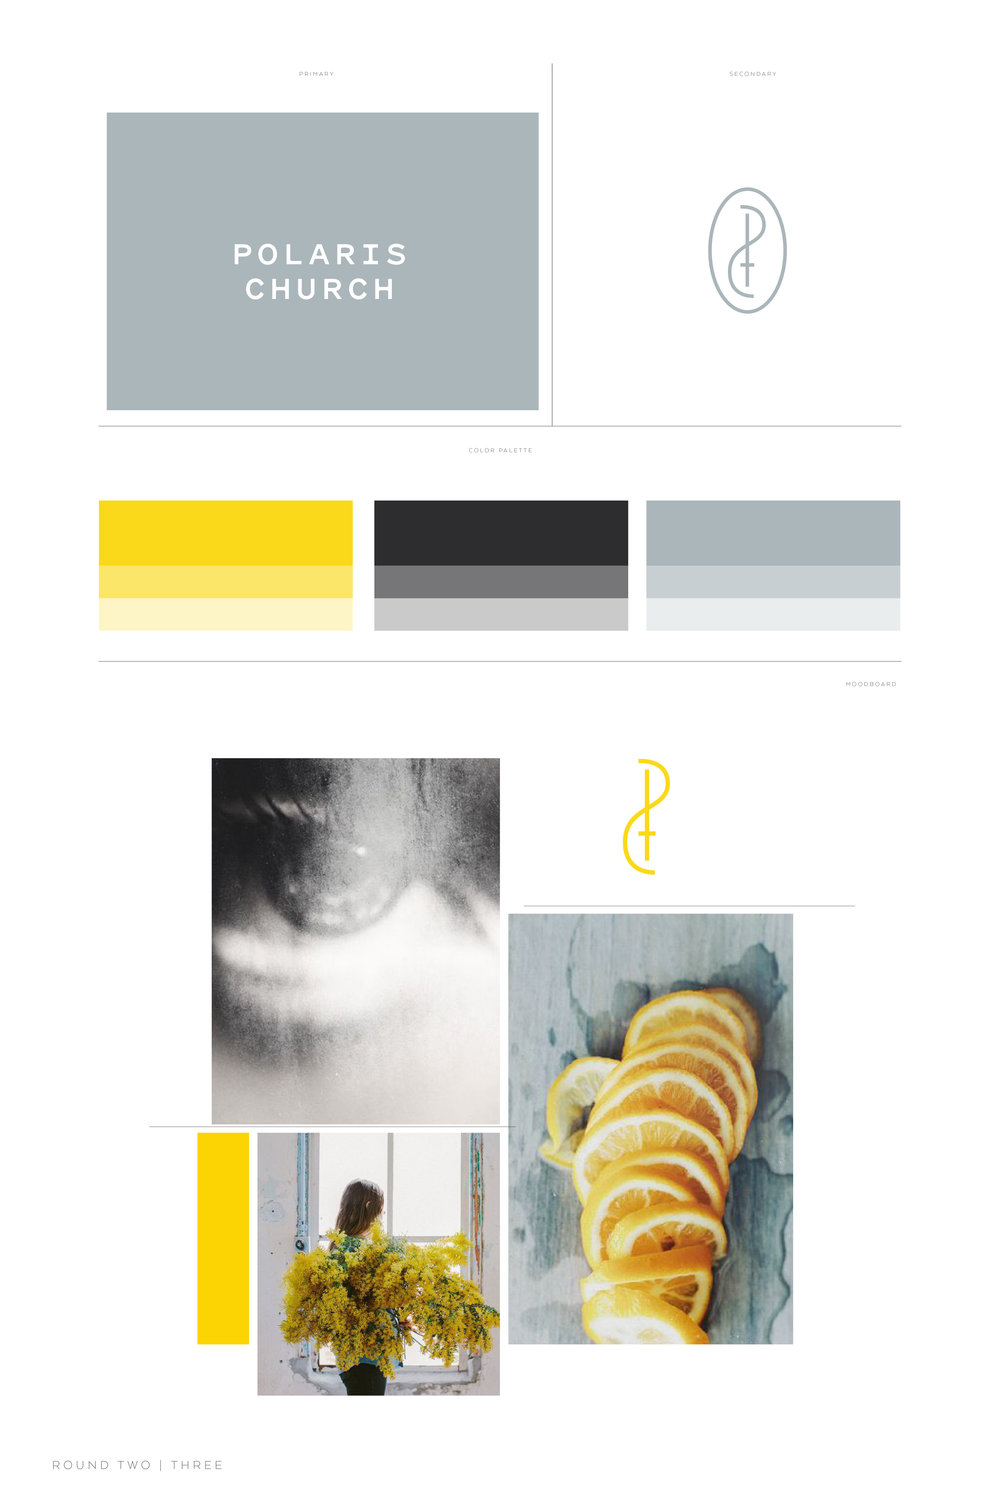 POLARISCHURCH_HONOR_BRANDBOARD_03.jpg